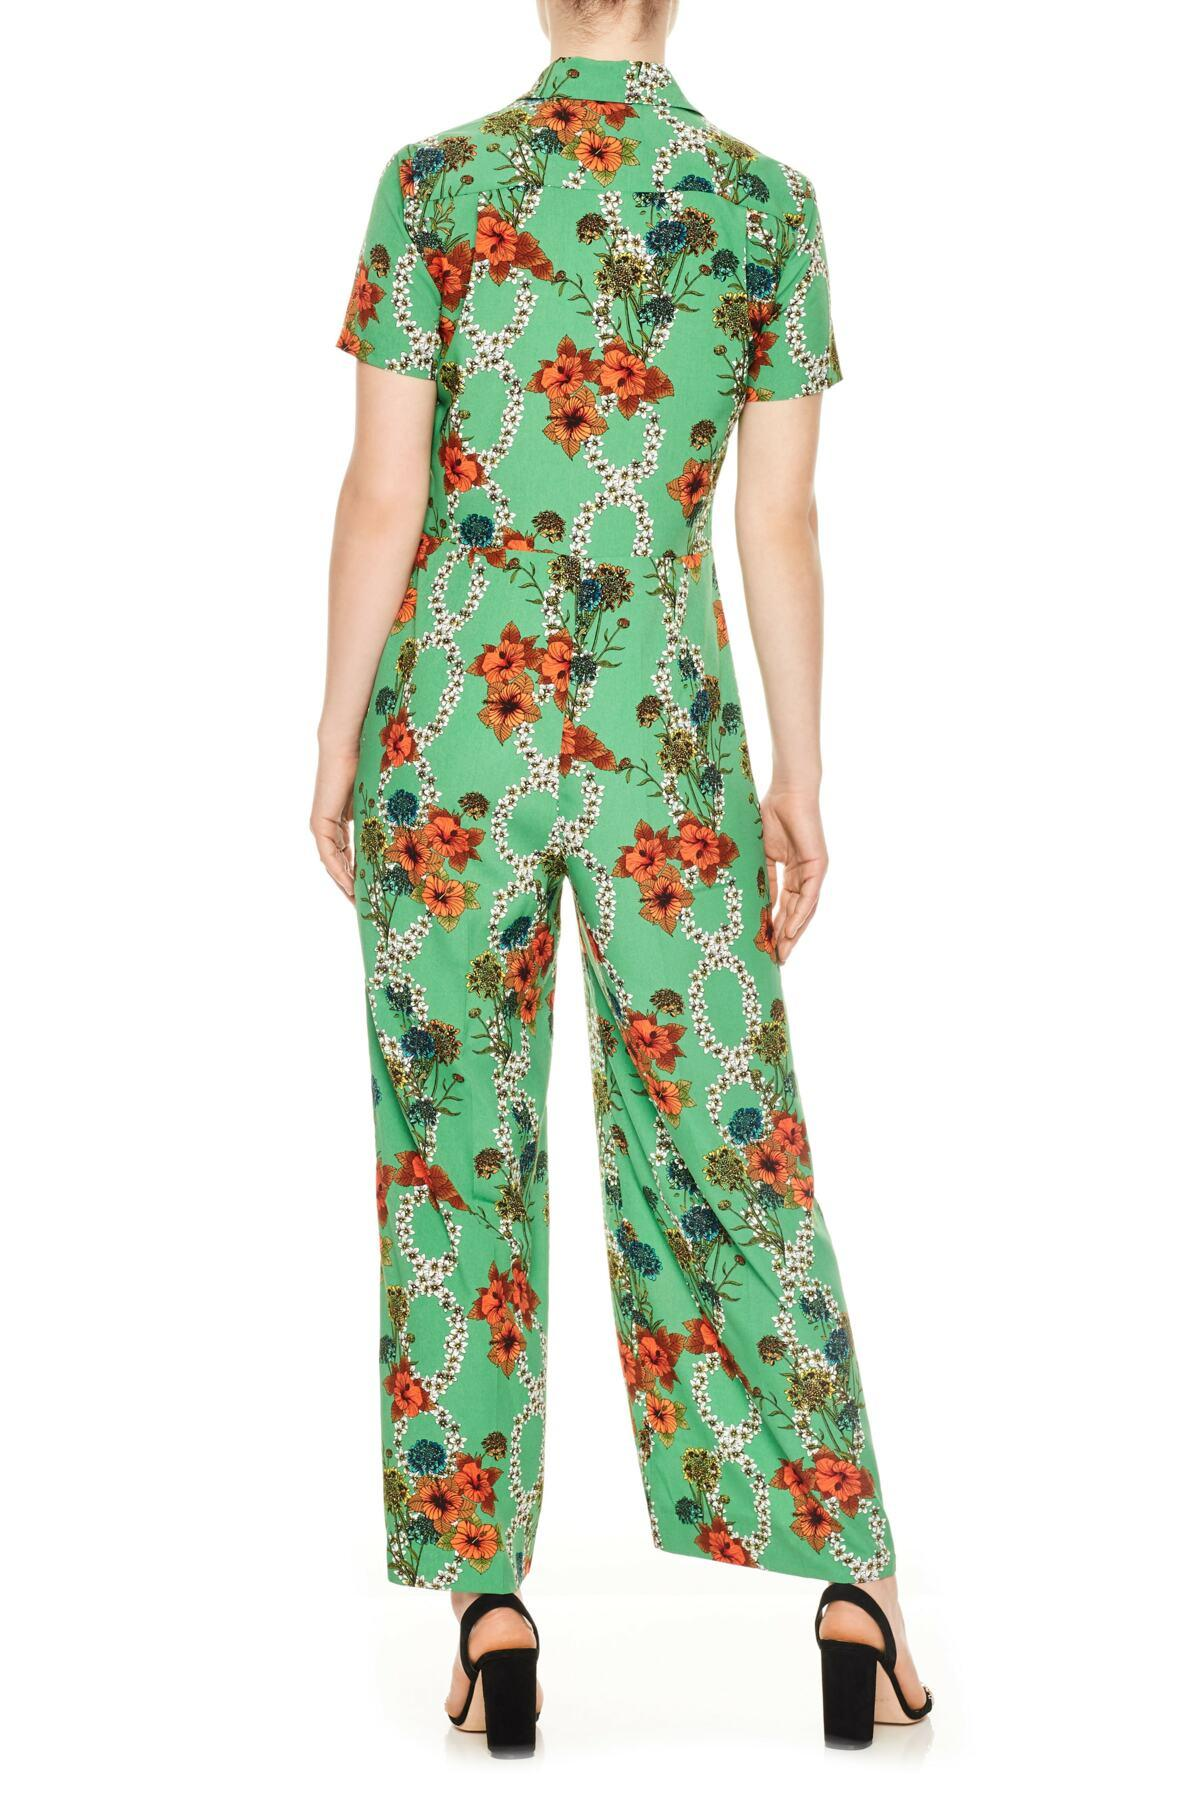 ab61ee14e0c Lyst - Sandro Floral Jumpsuit in Green